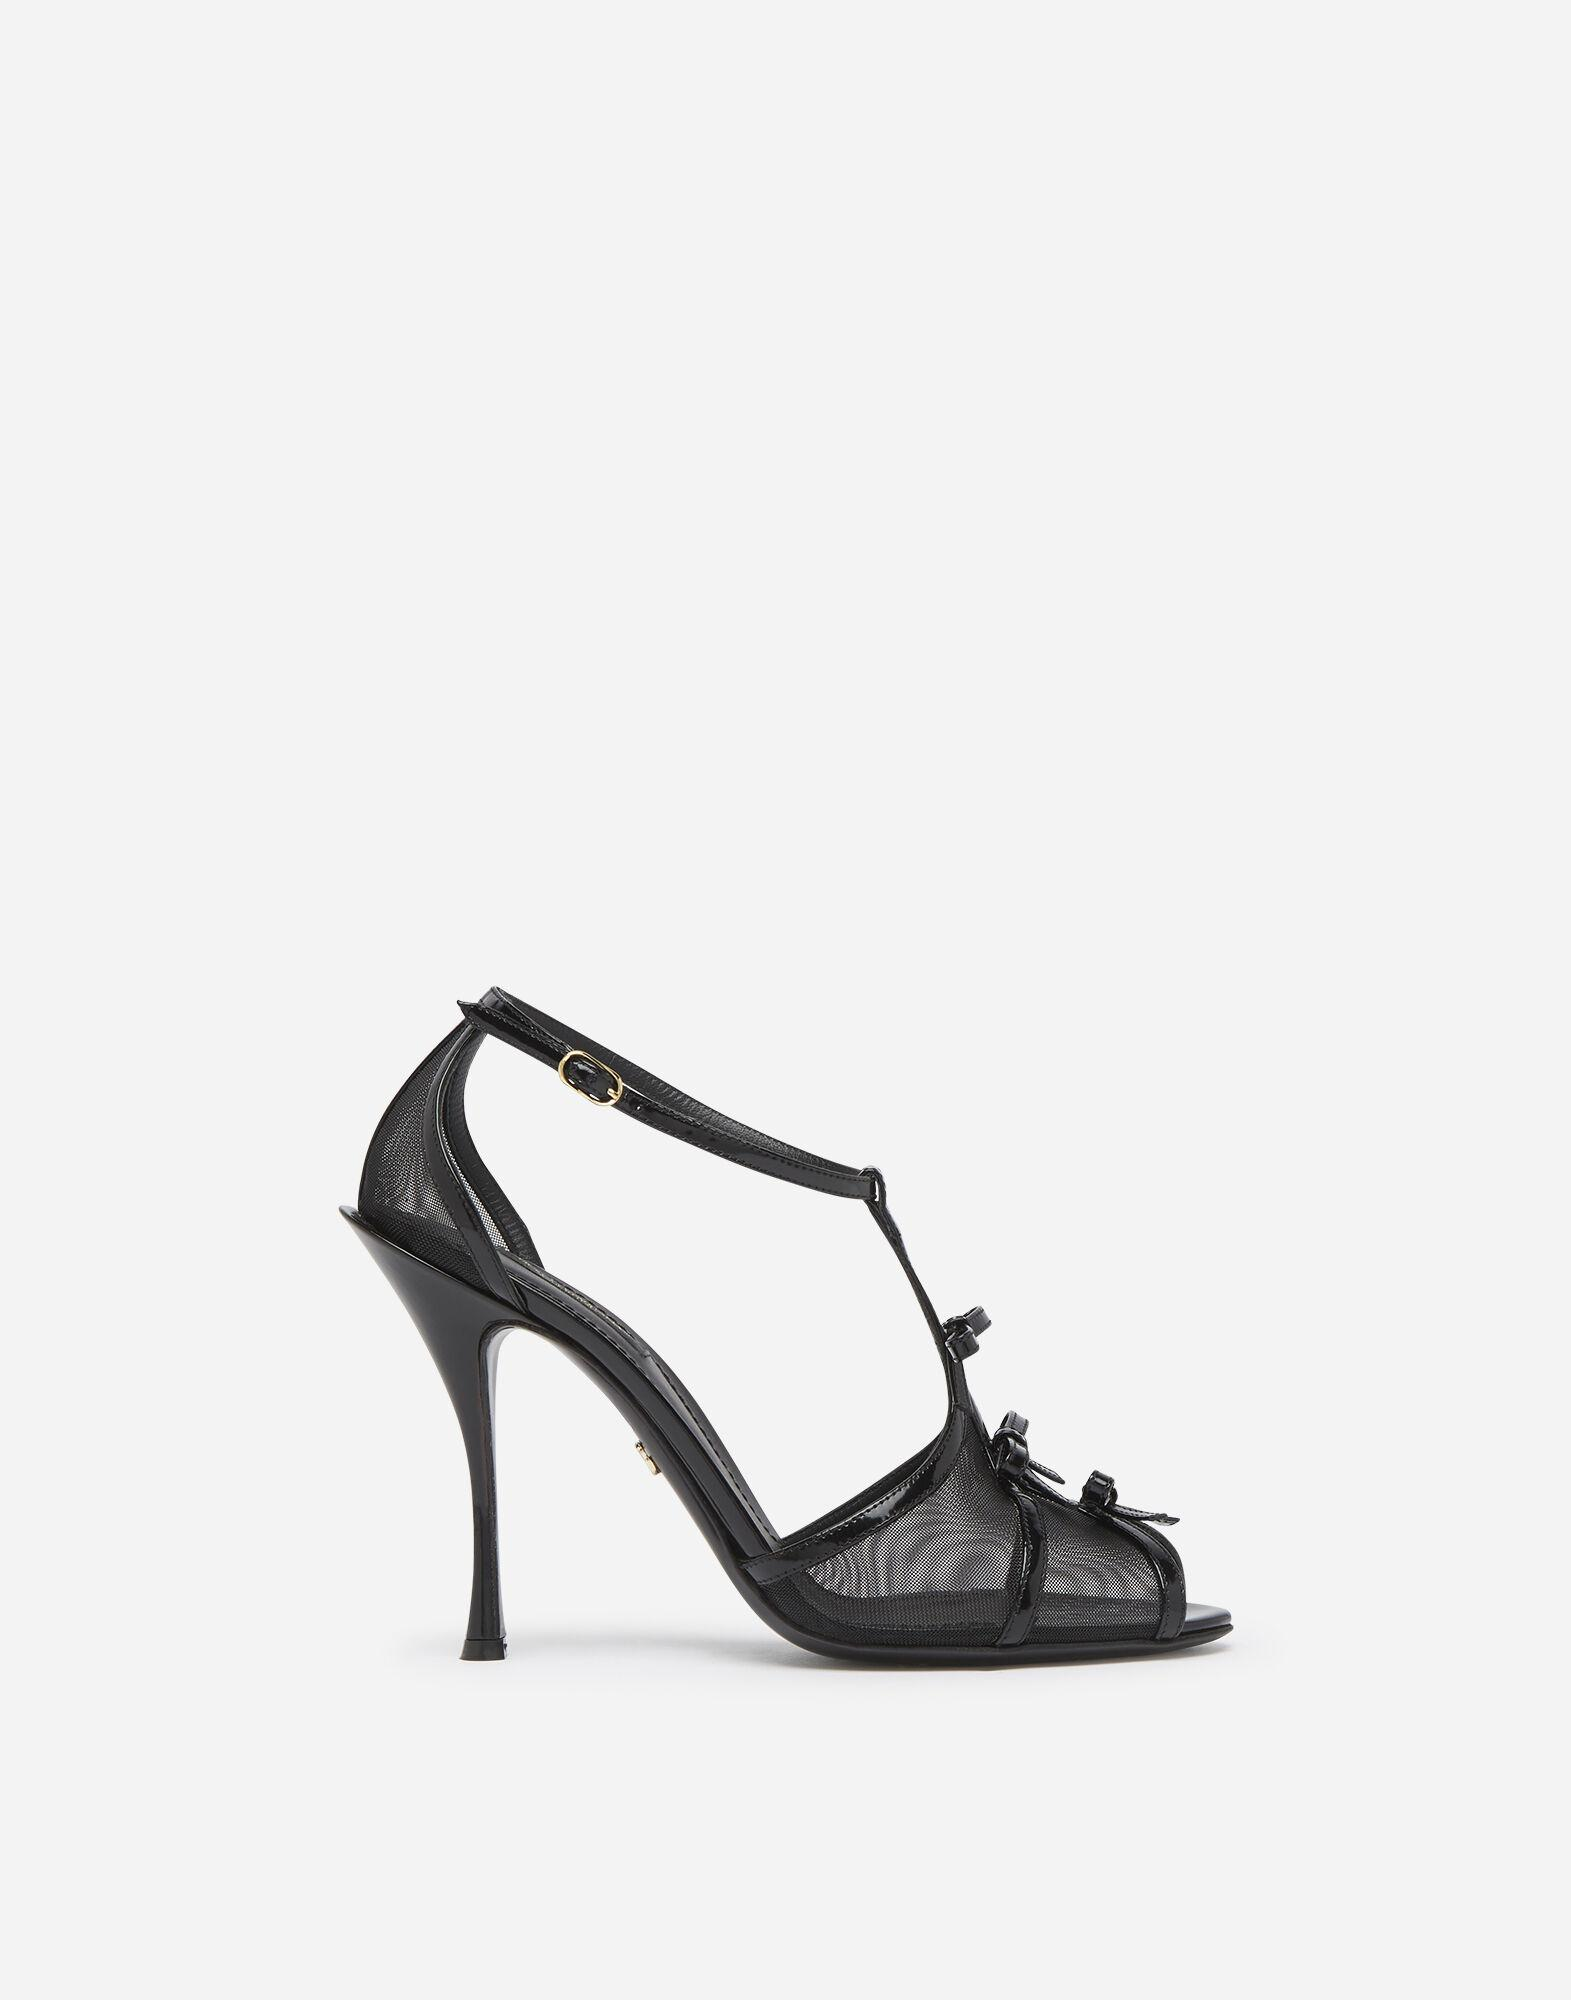 Polished calfskin and mesh sandals with small bows